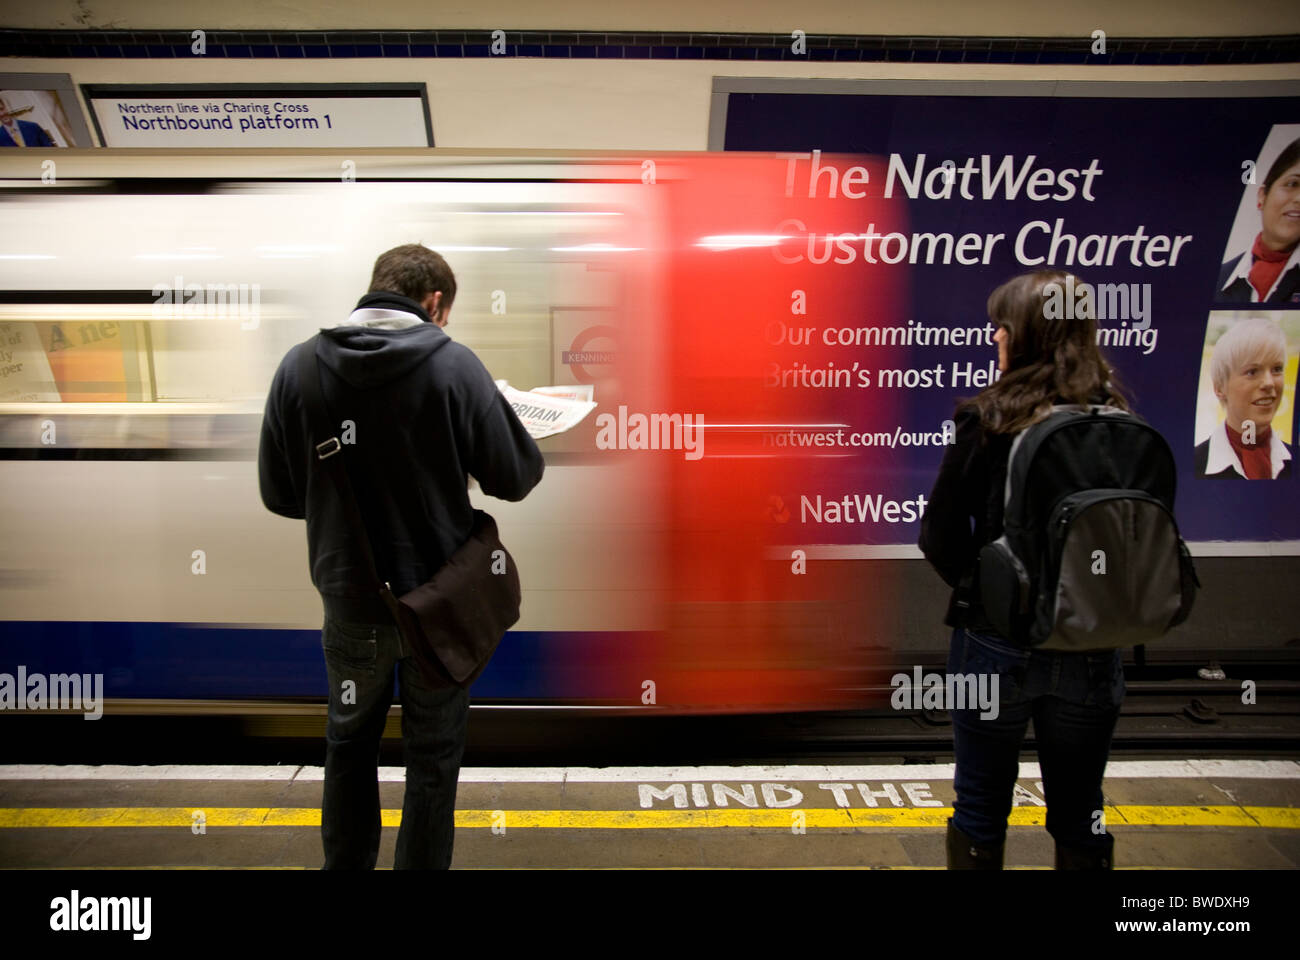 People waiting in front of moving tube at Kennington Station - Stock Image